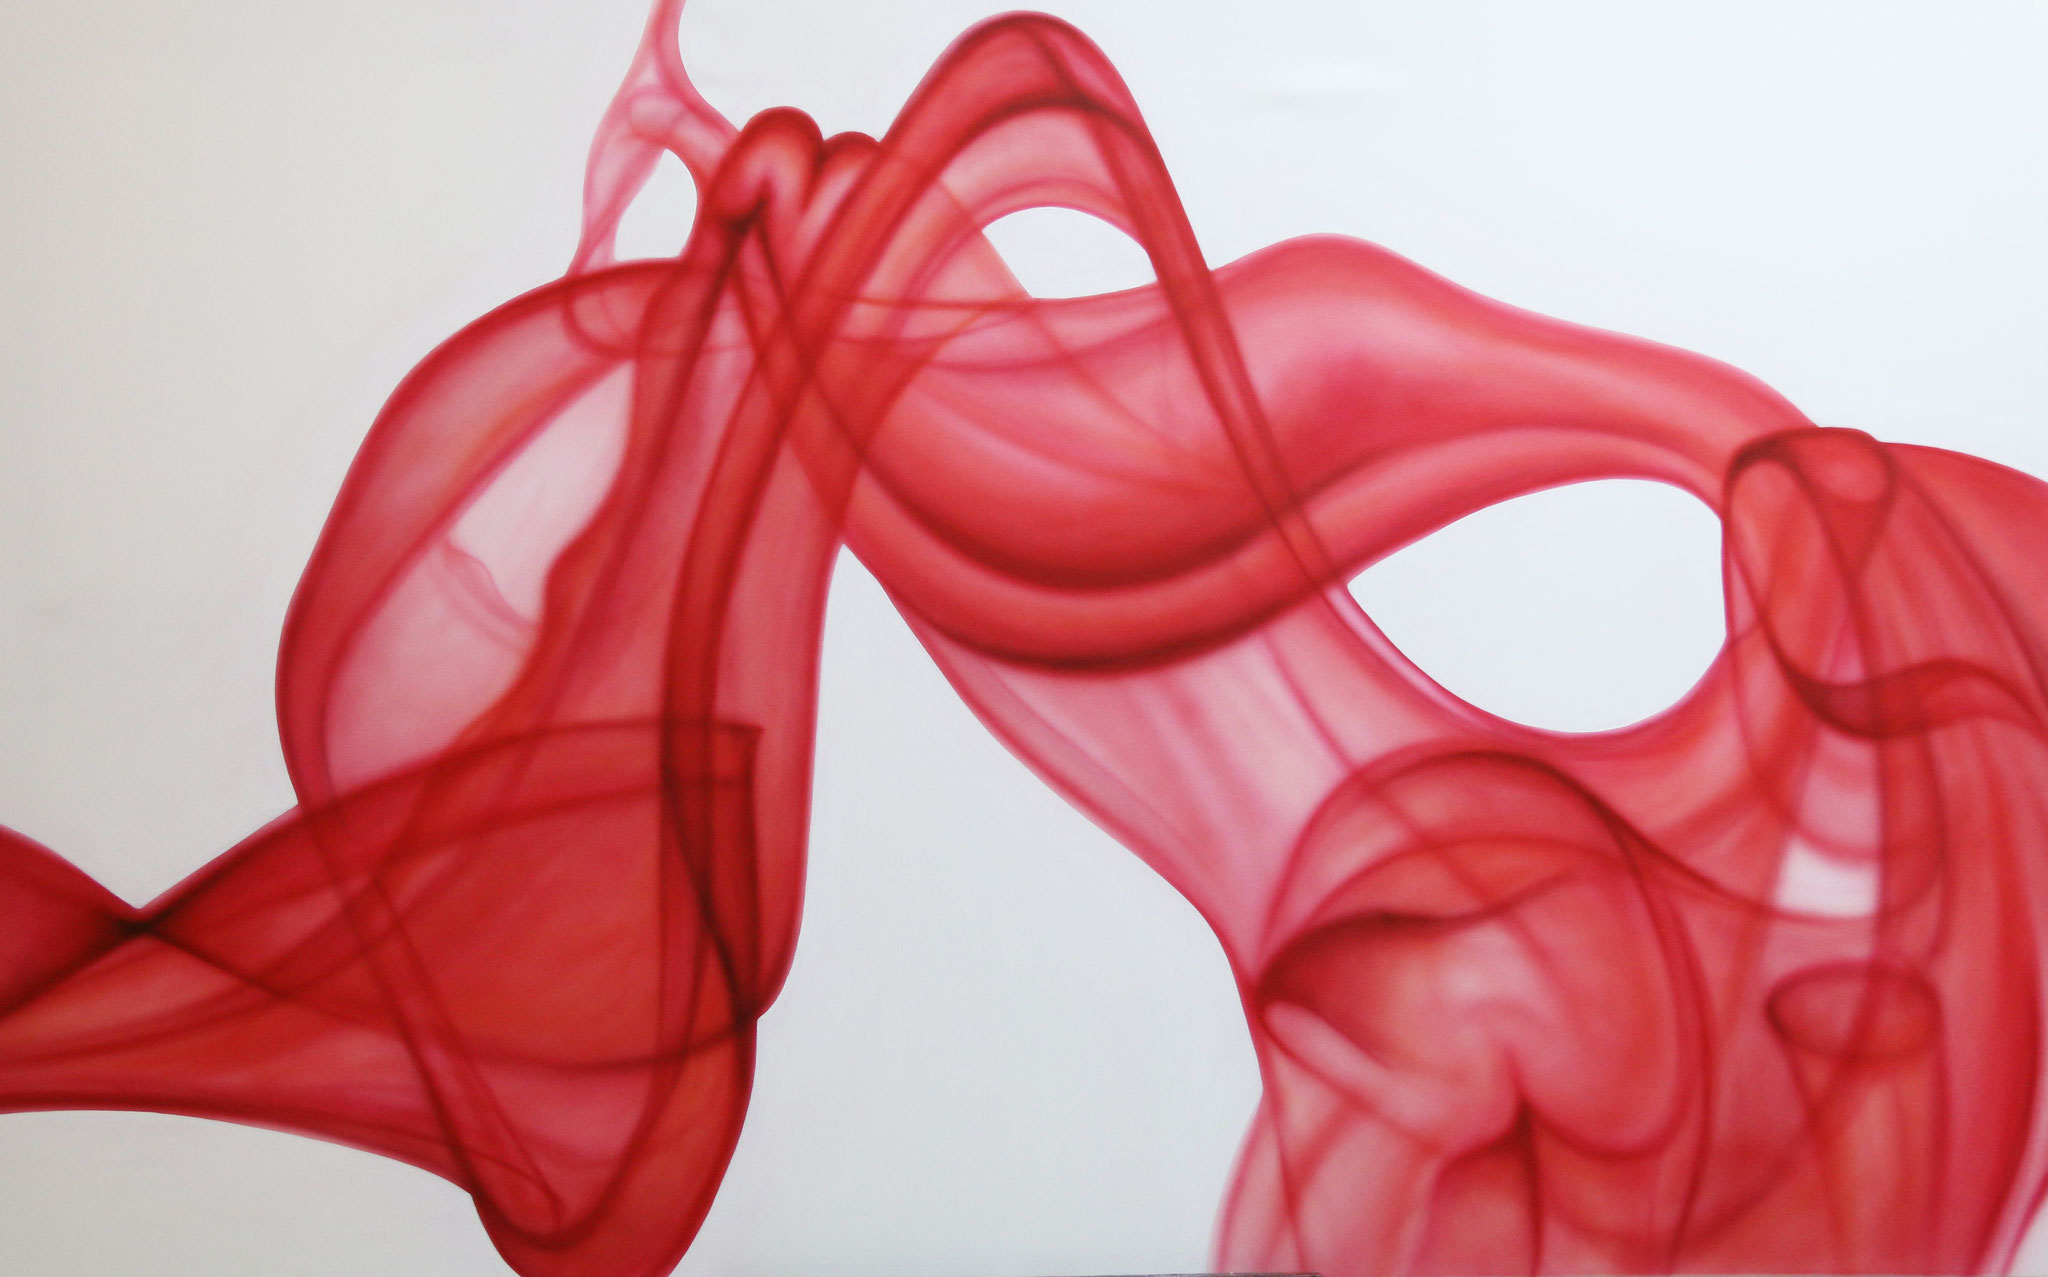 RED SMOKE II by Nasel- acrylic on canvas  100x160cm